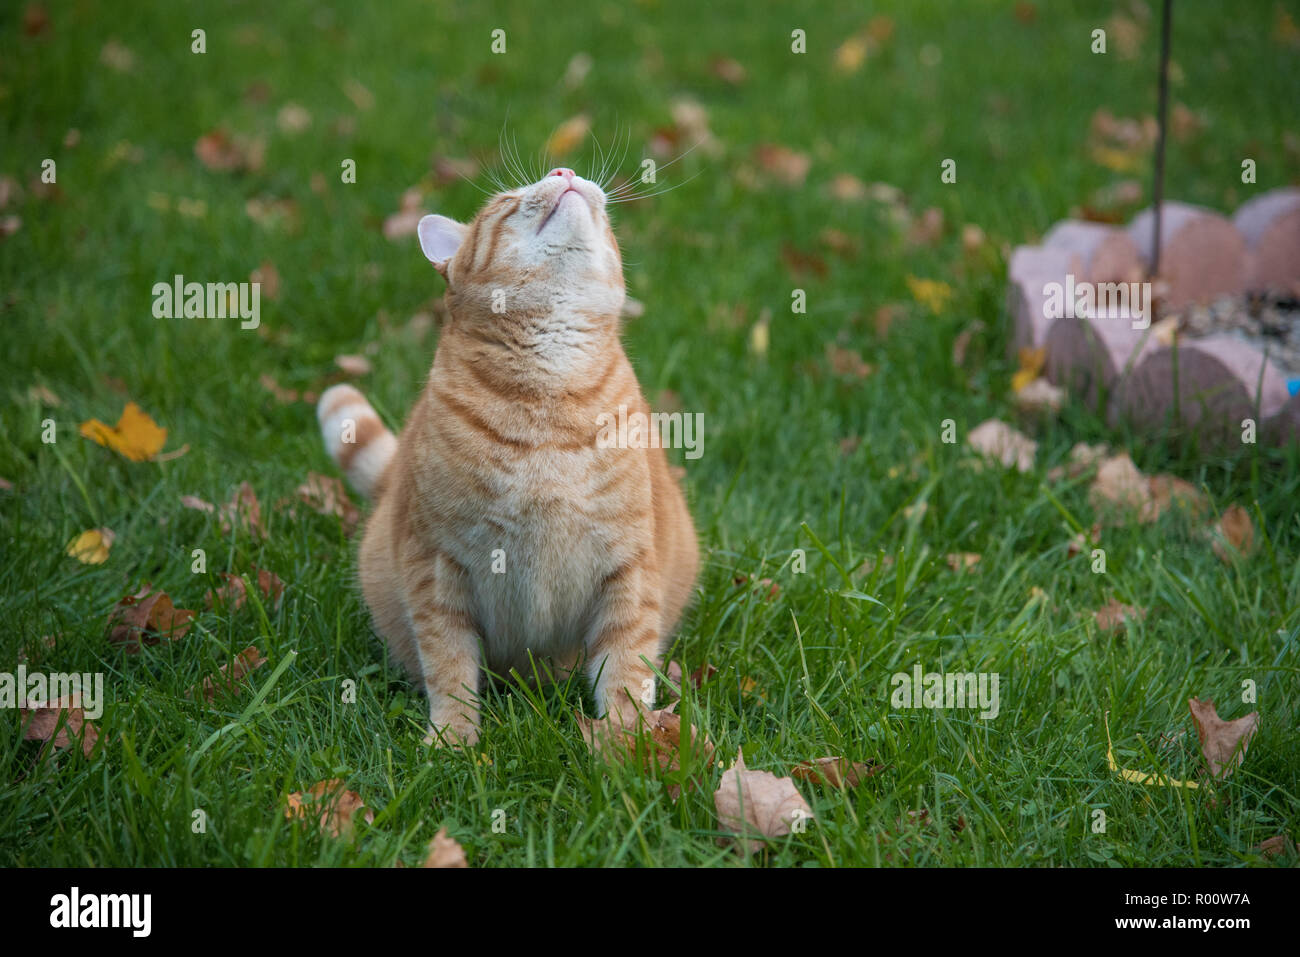 Orange Tabby Cat looking up at the birds in his yard. He is hunting from a seated position on the green grass. Autumn leaves are falling on the ground - Stock Image